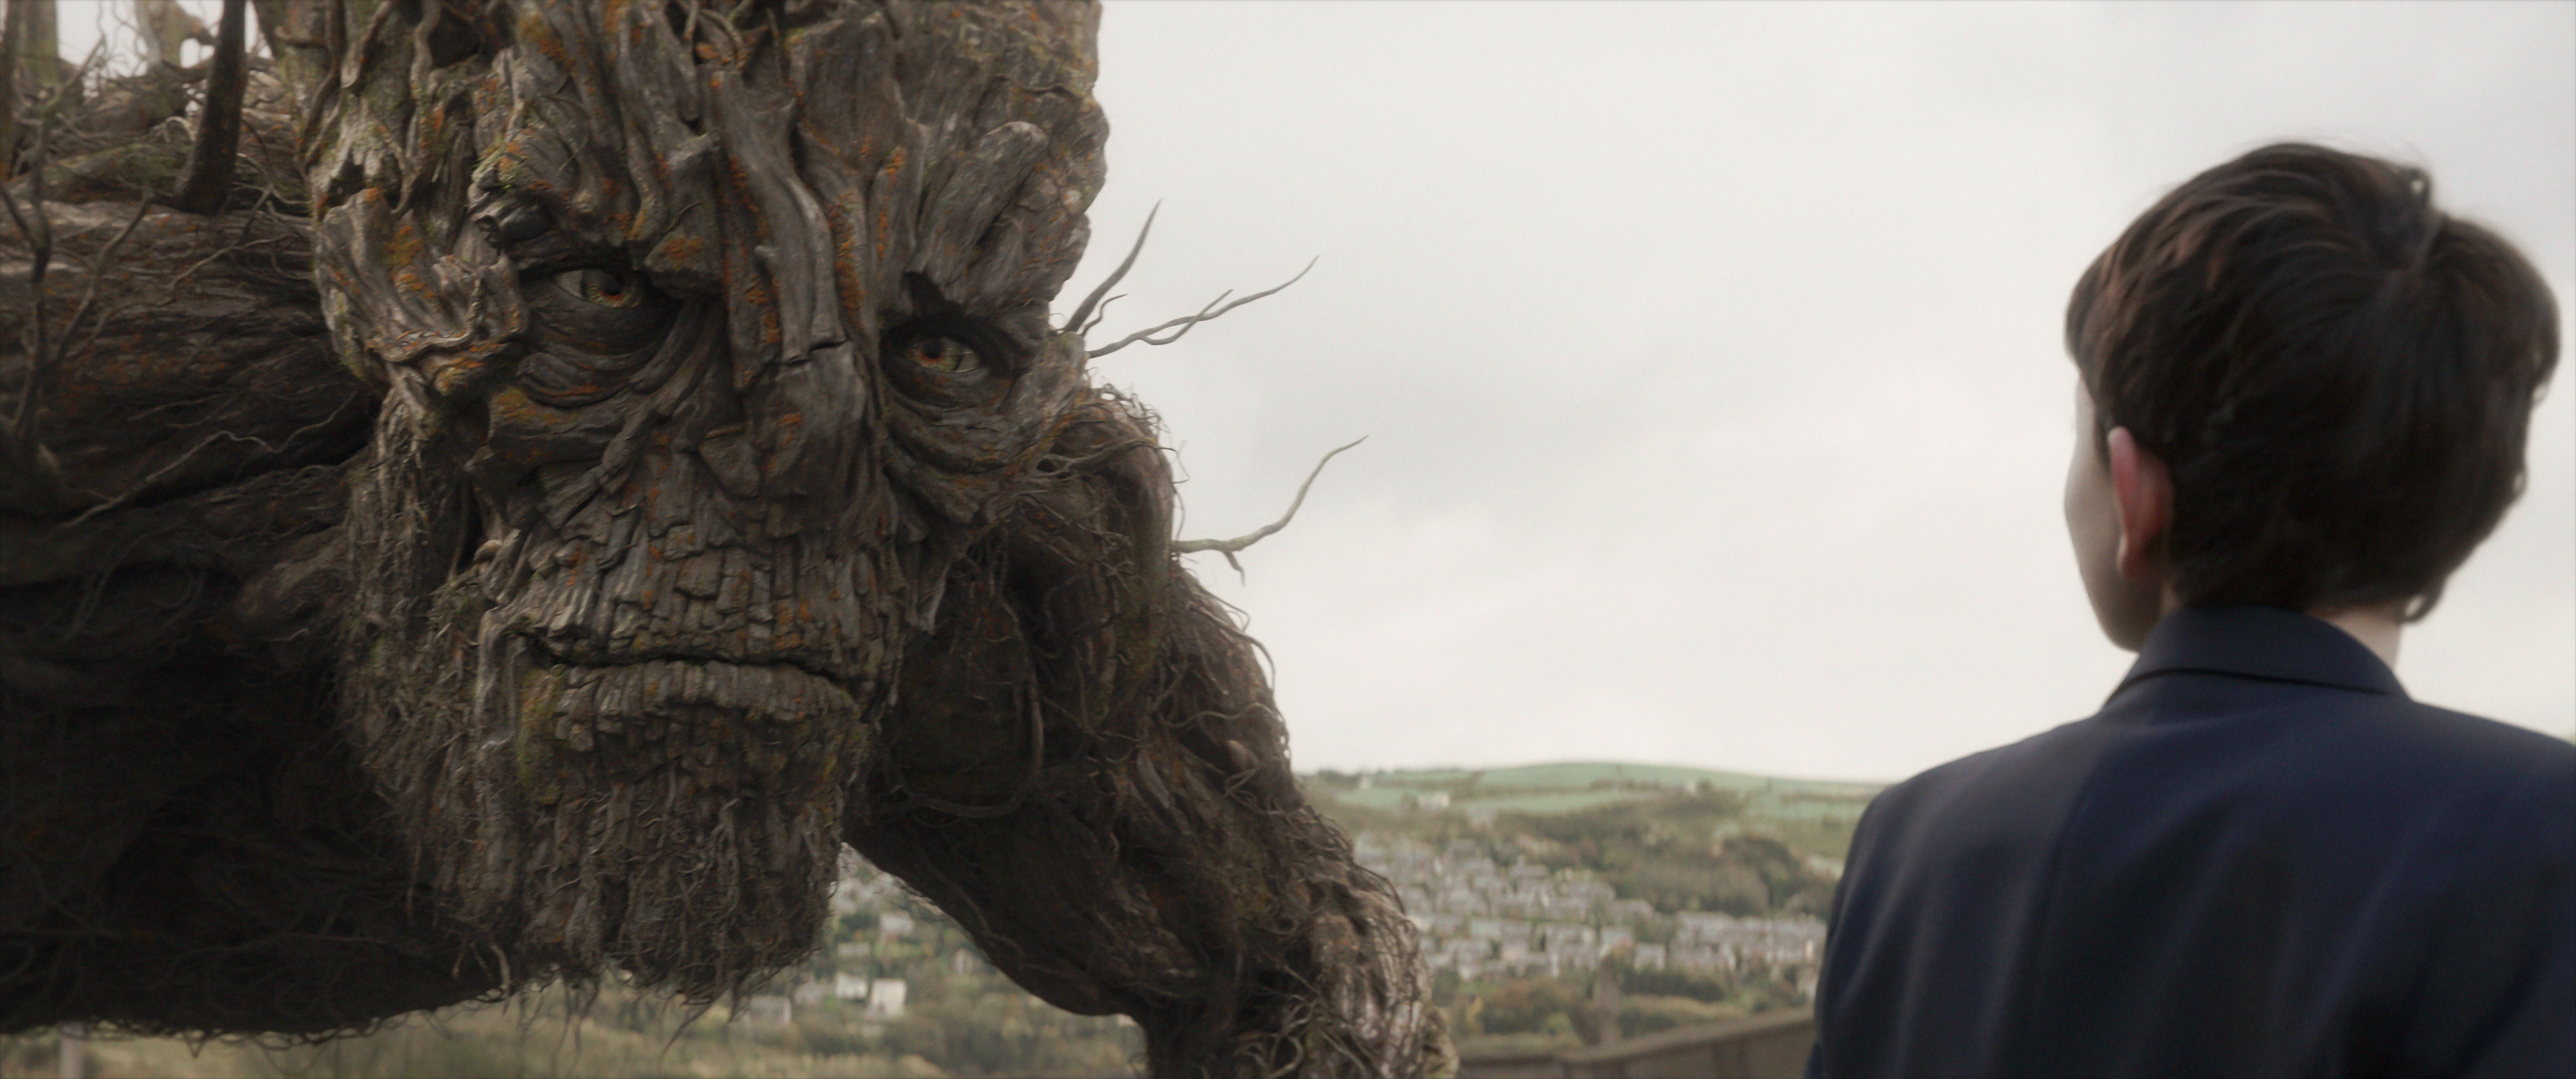 a-monster-calls-tree-exclusive-image.jpg